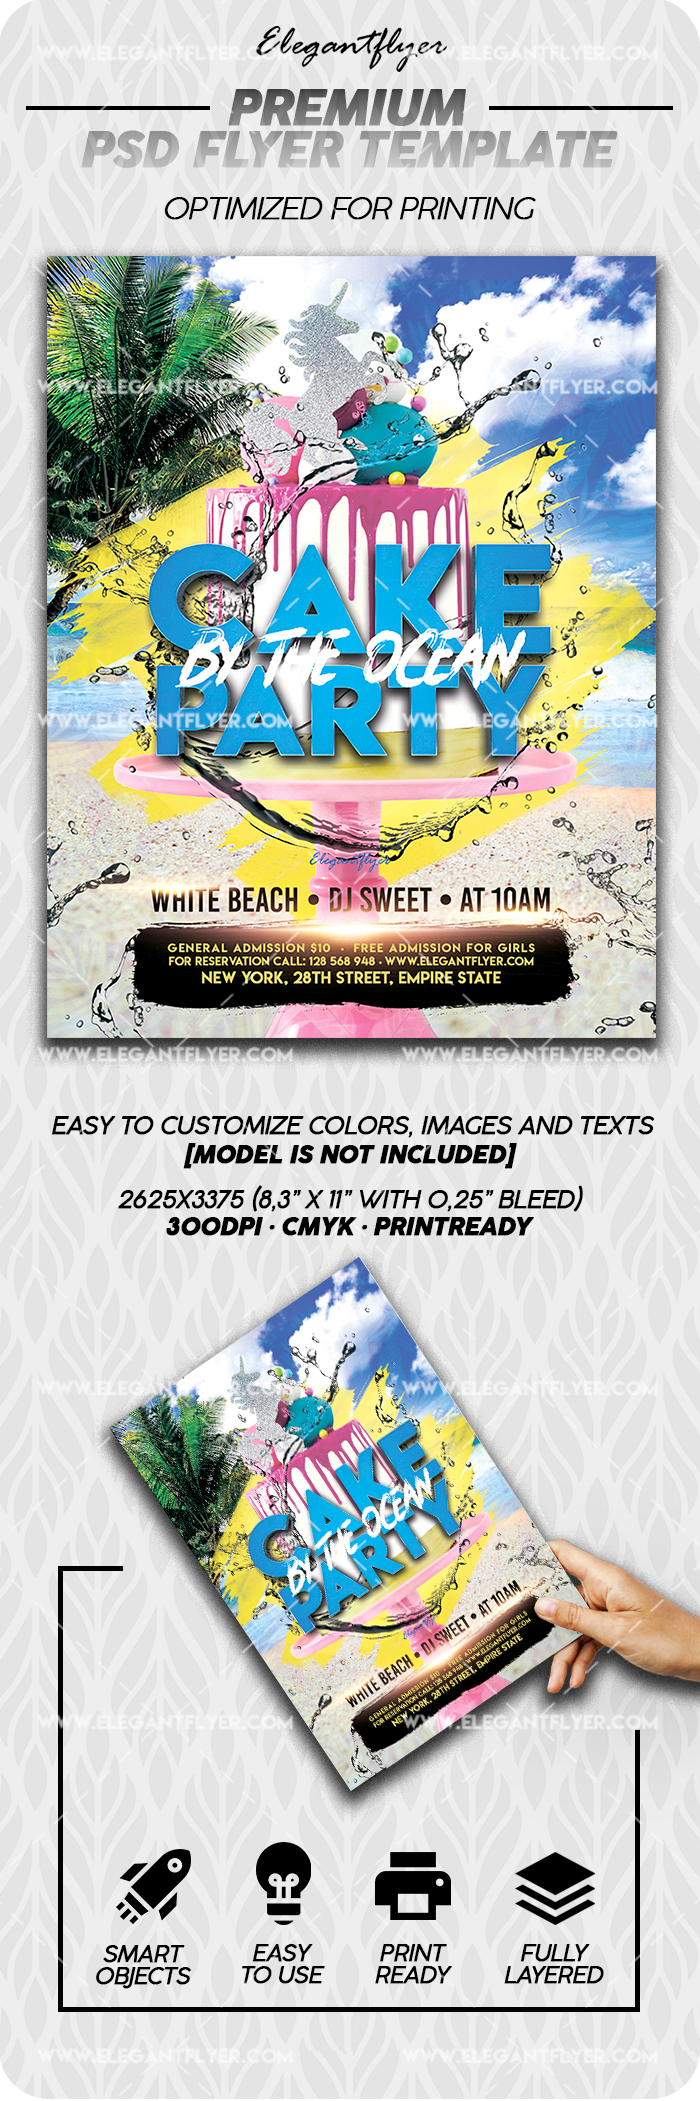 Cake by the Ocean Party – Premium Flyer Template in PSD